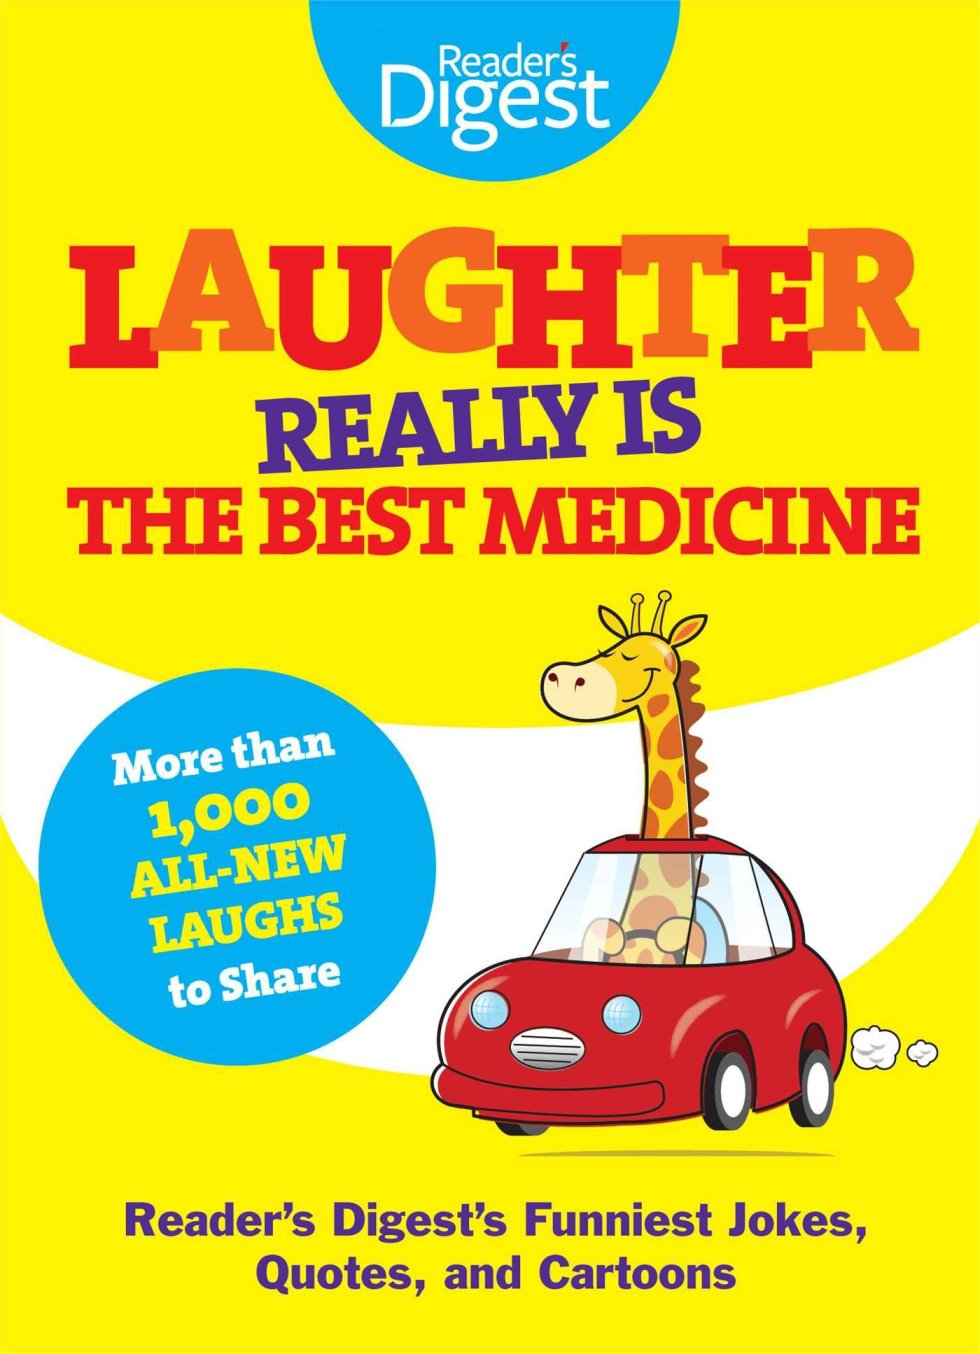 Laughter is the Best Medicine April Fool's Day gifts